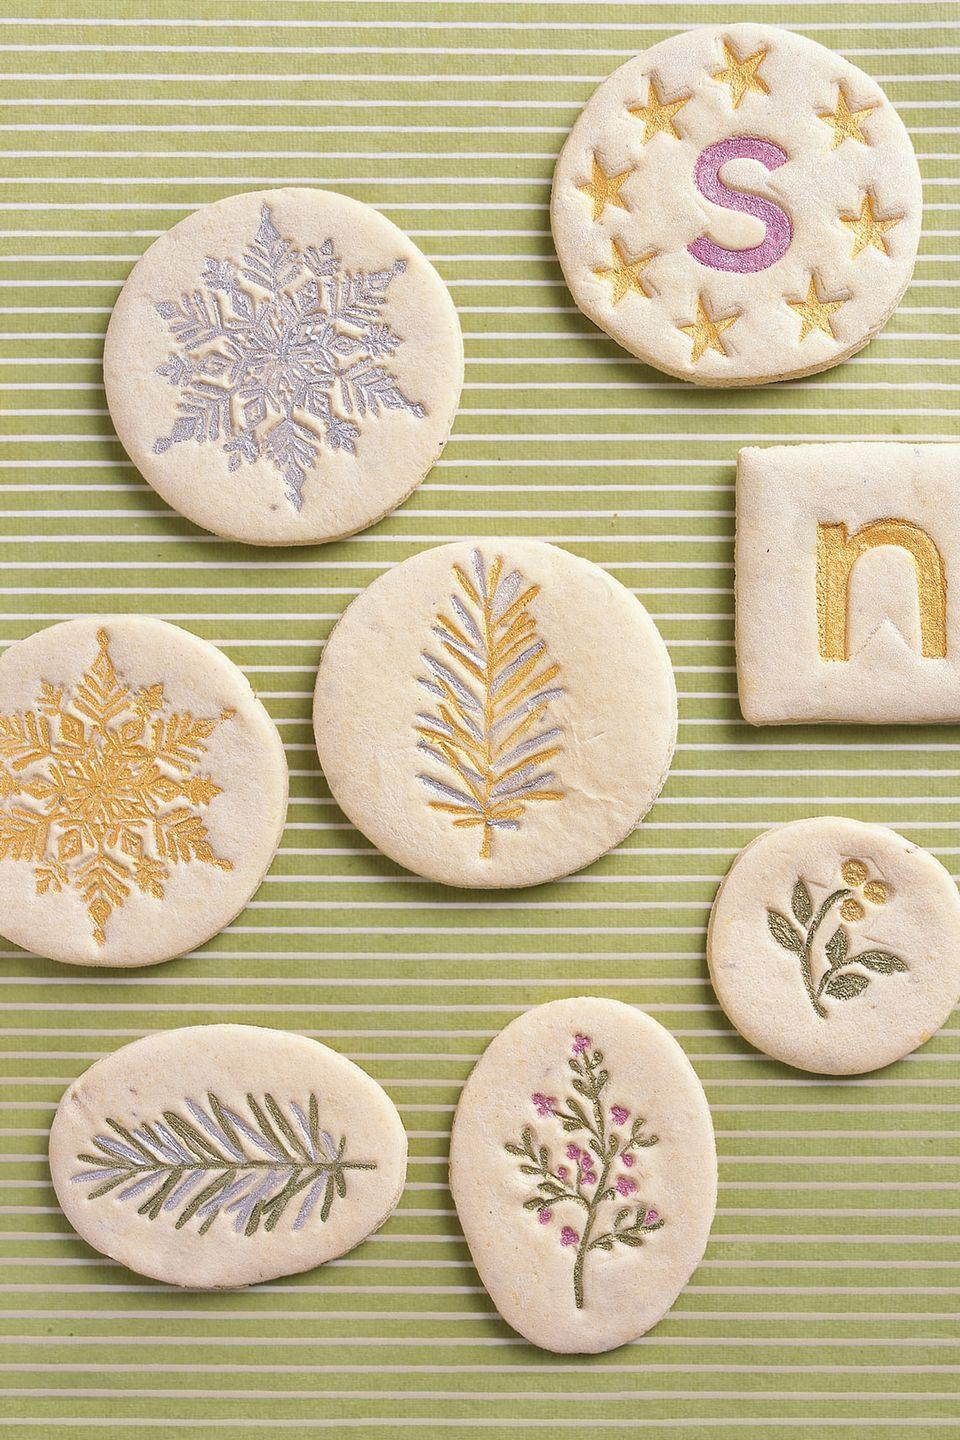 "<p>Bavarian cookies called <em>springerle</em> are known for their distinctive flavor. The dough is rolled onto a floured surface, imprinted with clean, floured rubber stamps, dried overnight, and then baked.</p><p><strong><a href=""https://www.countryliving.com/food-drinks/recipes/a1897/springerle-4361/?magazine=countryliving"" rel=""nofollow noopener"" target=""_blank"" data-ylk=""slk:Get the recipe"" class=""link rapid-noclick-resp"">Get the recipe</a>.</strong></p><p><a class=""link rapid-noclick-resp"" href=""https://go.redirectingat.com?id=74968X1596630&url=https%3A%2F%2Fwww.etsy.com%2Flisting%2F843183962%2Fchristmas-tree-stamps-snowflake-stamps&sref=https%3A%2F%2Fwww.countryliving.com%2Ffood-drinks%2Fg2777%2Fchristmas-sugar-cookies%2F"" rel=""nofollow noopener"" target=""_blank"" data-ylk=""slk:SHOP STAMPS"">SHOP STAMPS</a><br></p>"